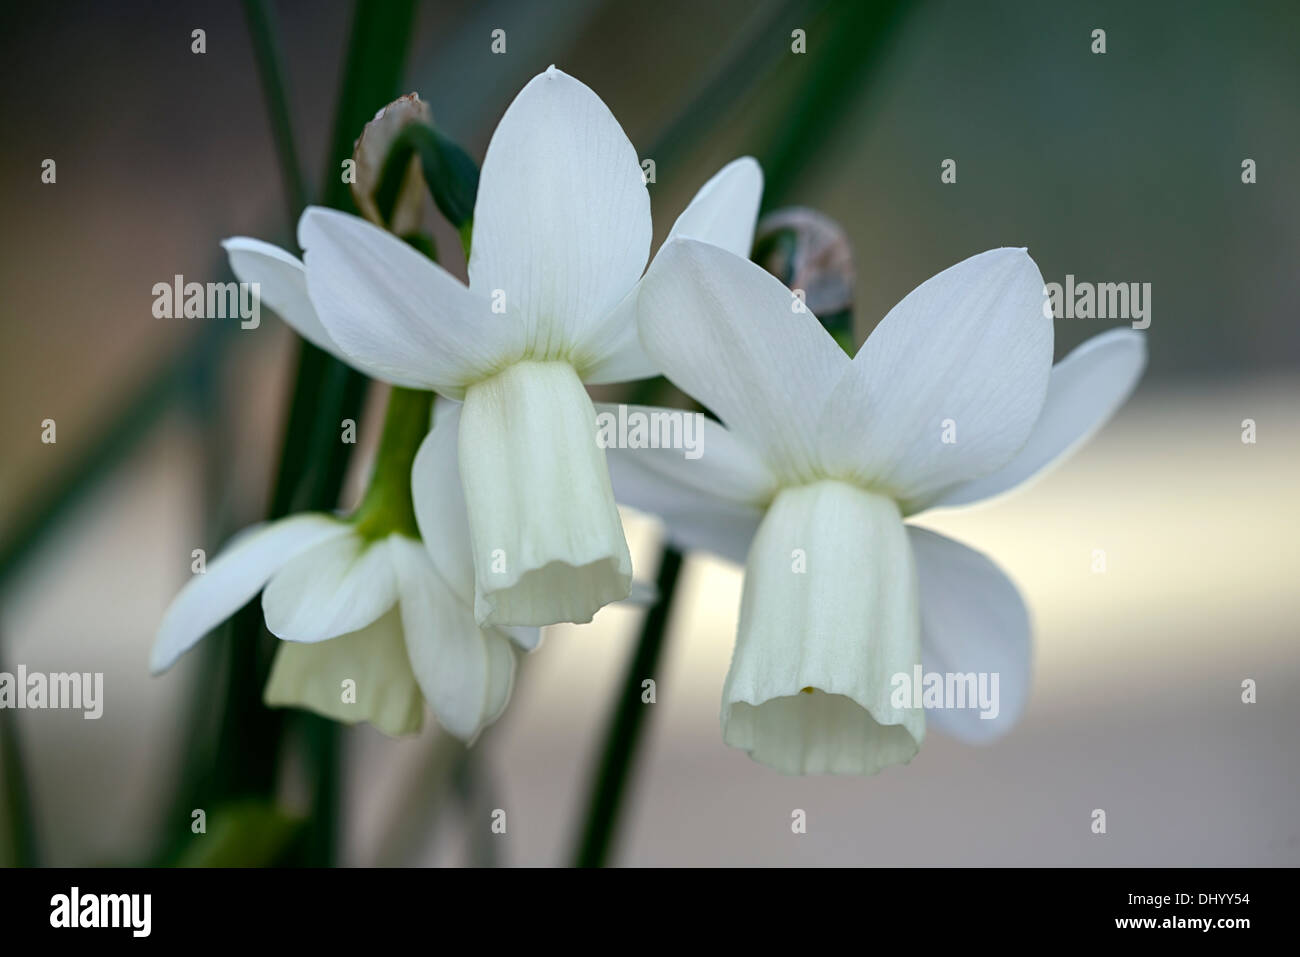 Narcissus ice wings triandrus daffodil angels tears white flower narcissus ice wings triandrus daffodil angels tears white flower flowers narcissi daffodils bulbs spring flowering blooms mightylinksfo